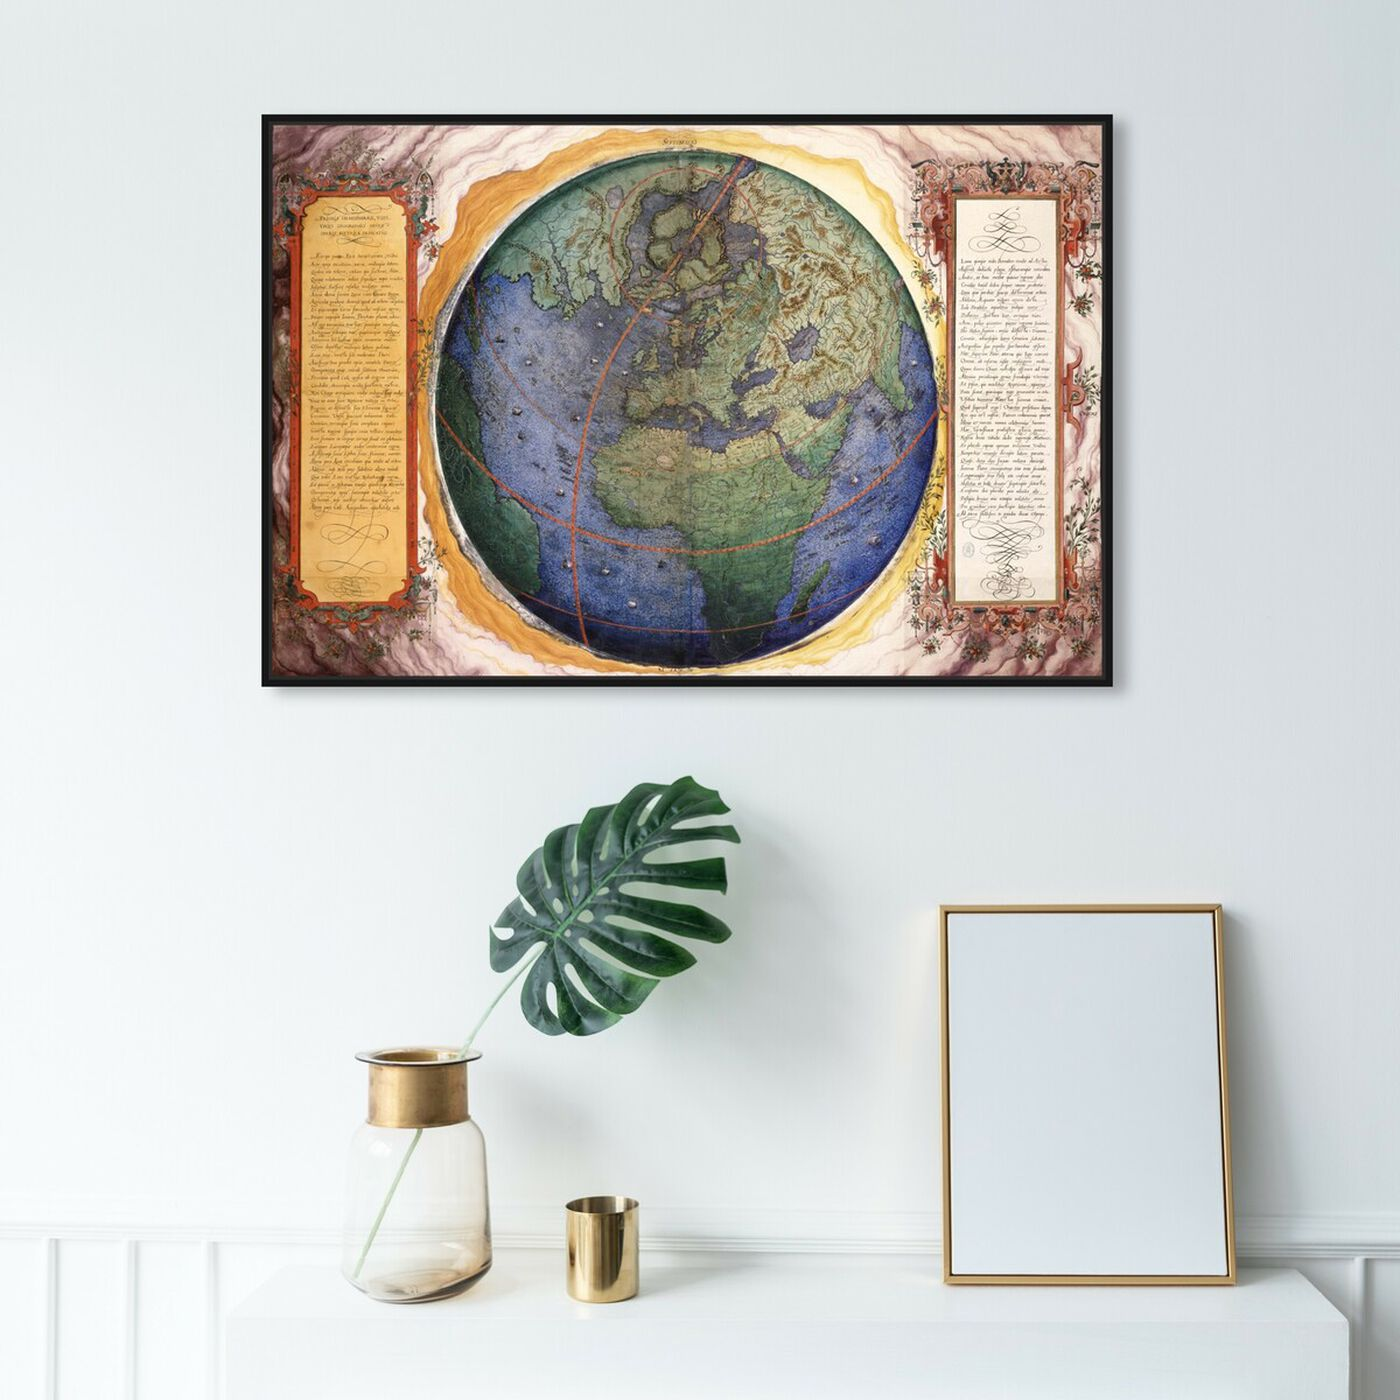 Hanging view of Prioris Hemisphaerii featuring maps and flags and world maps art.